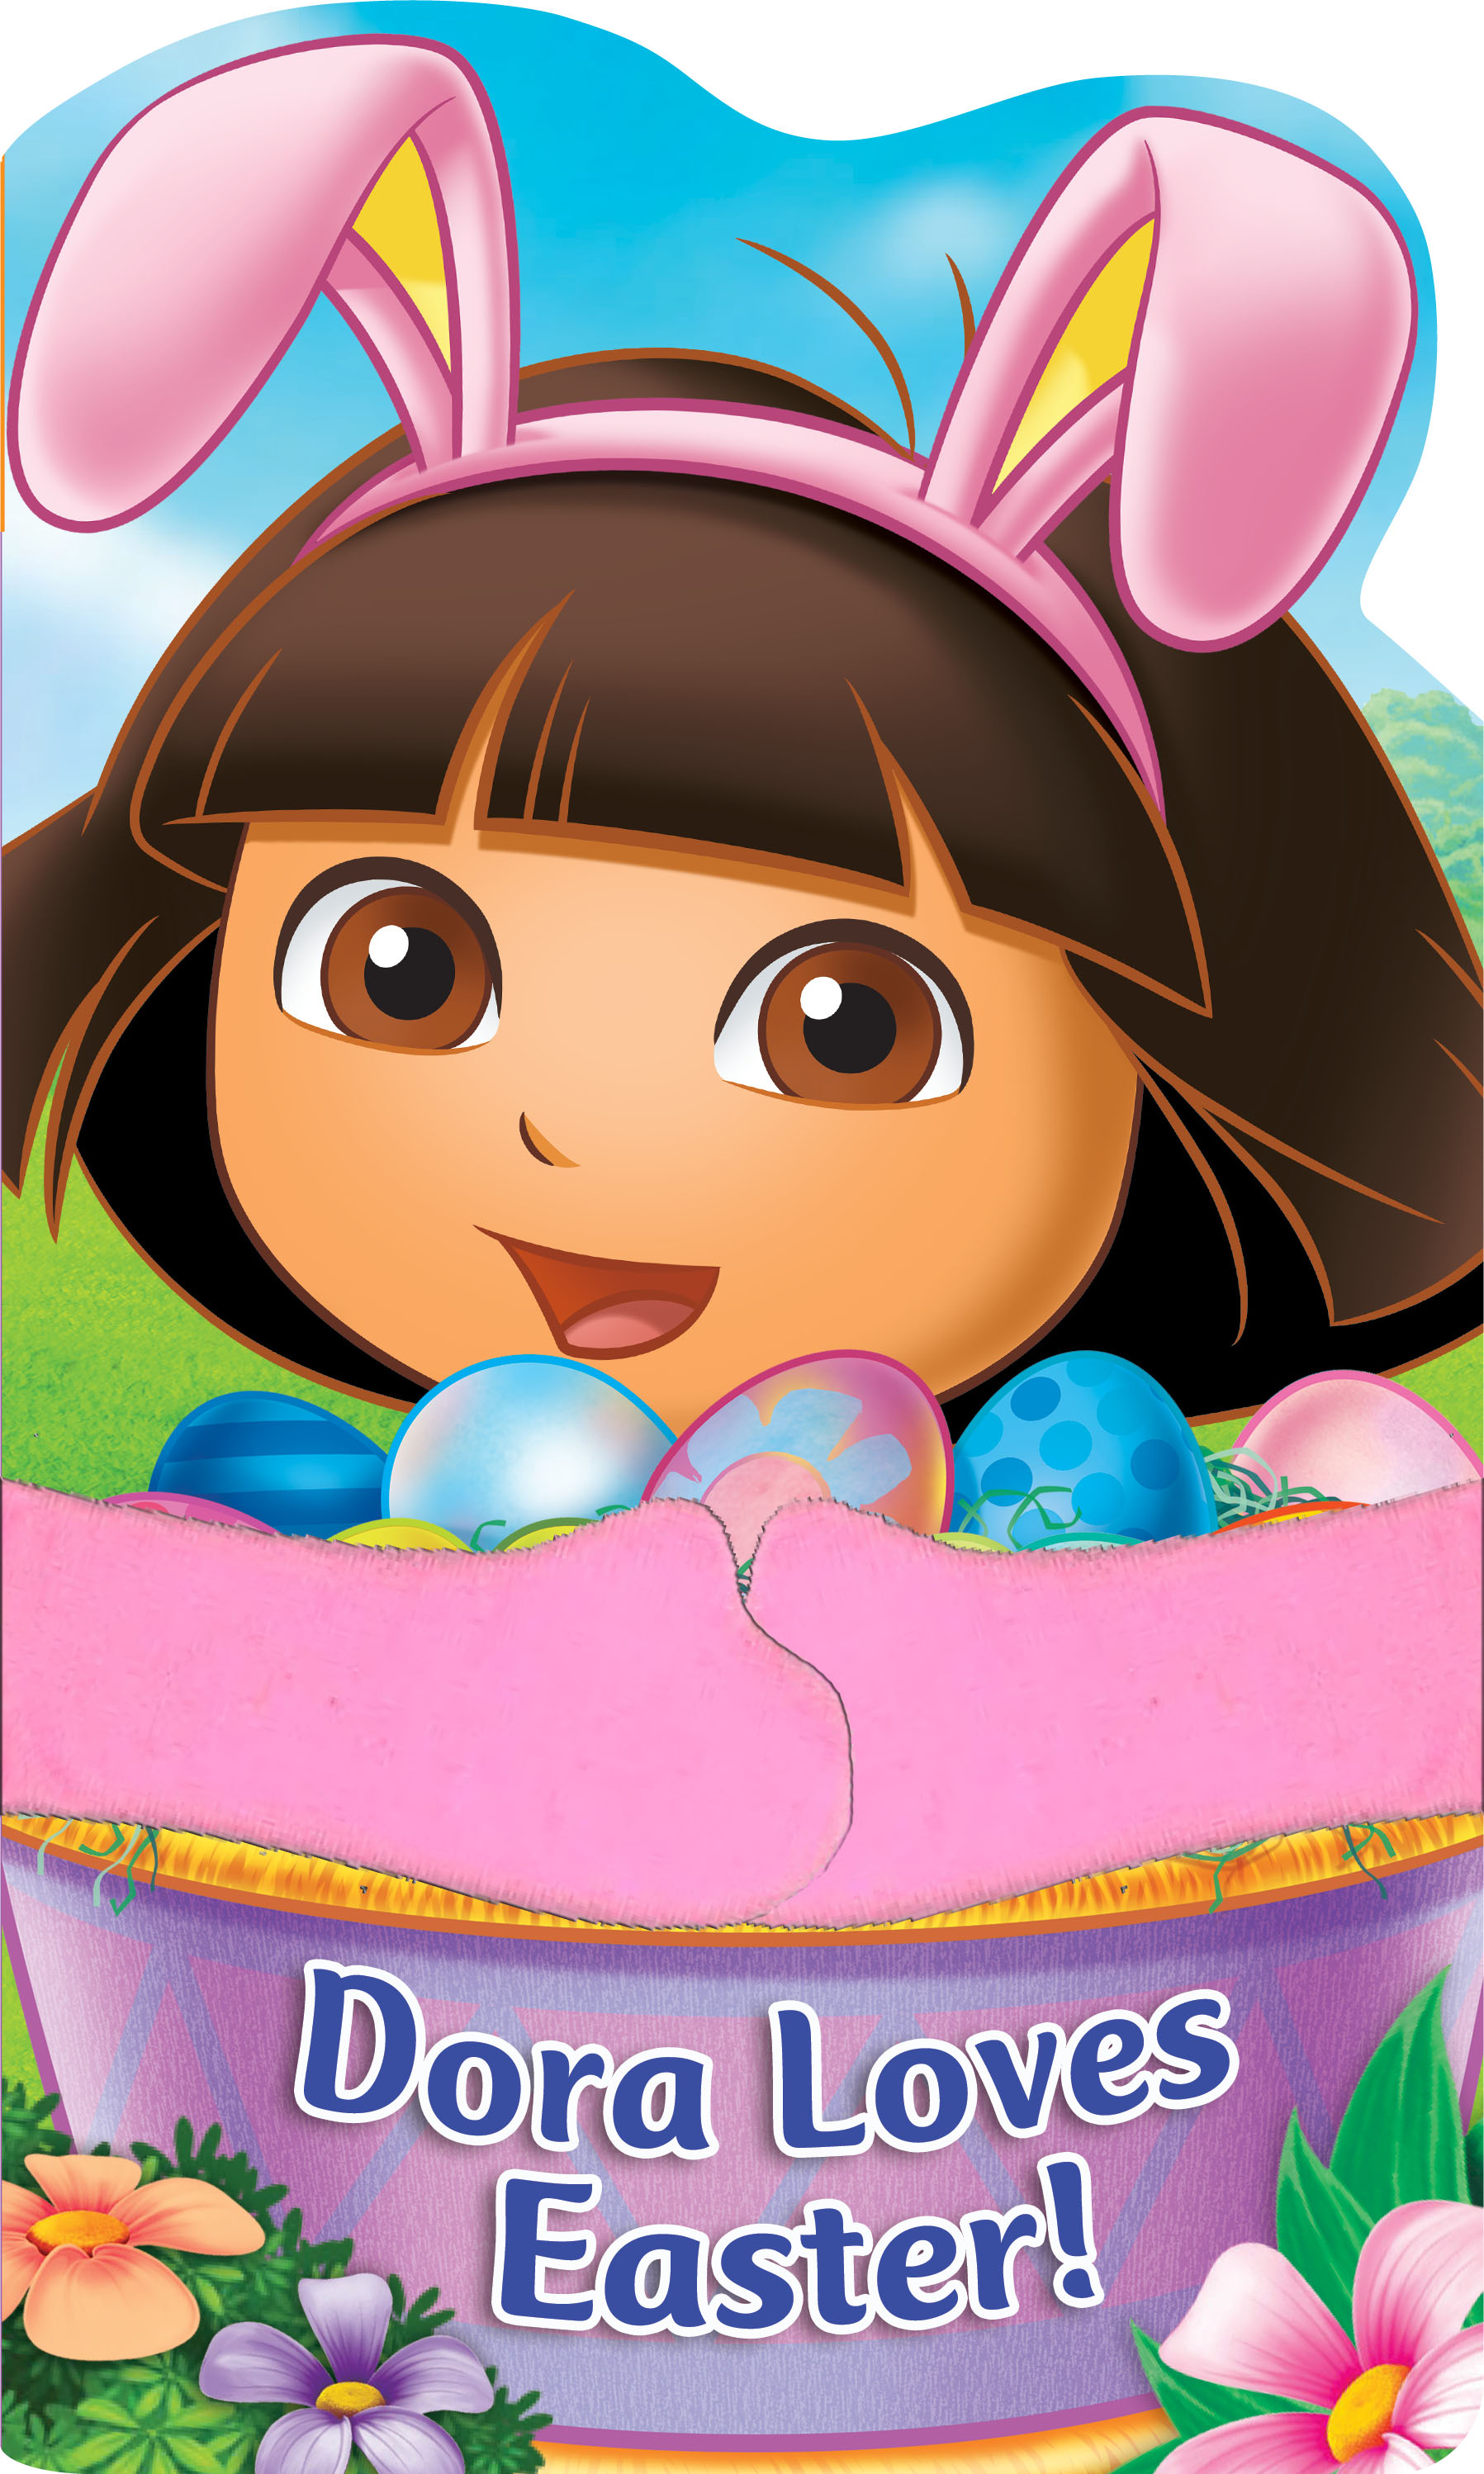 Dora the Explorer Official Publisher Page Simon Schuster